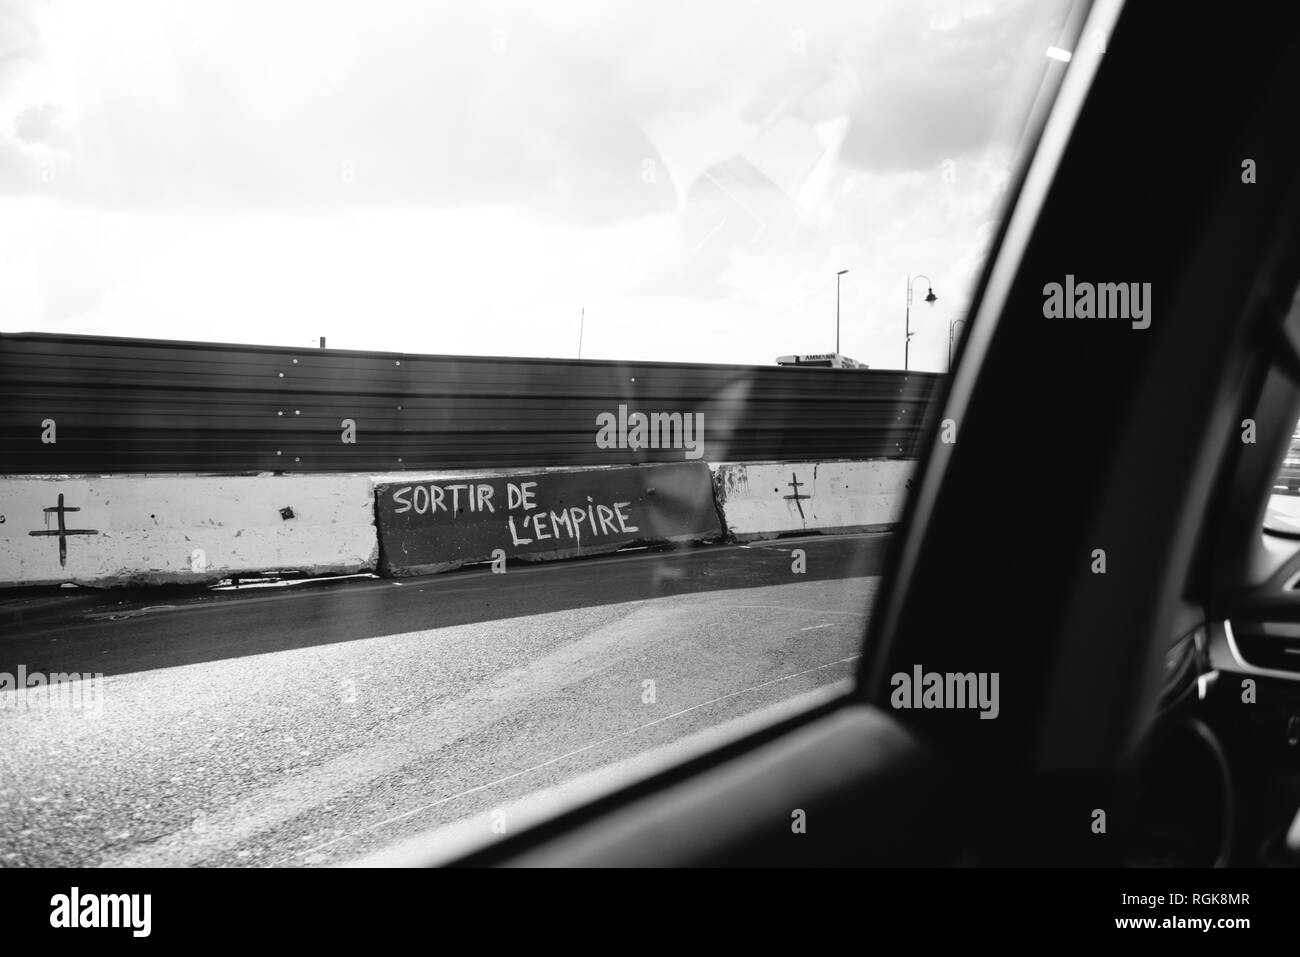 View from the car of graffiti sign on the peripherique highway border of Frexit and Exit from empire sign drawed by anty European Union members - black and white. - Stock Image